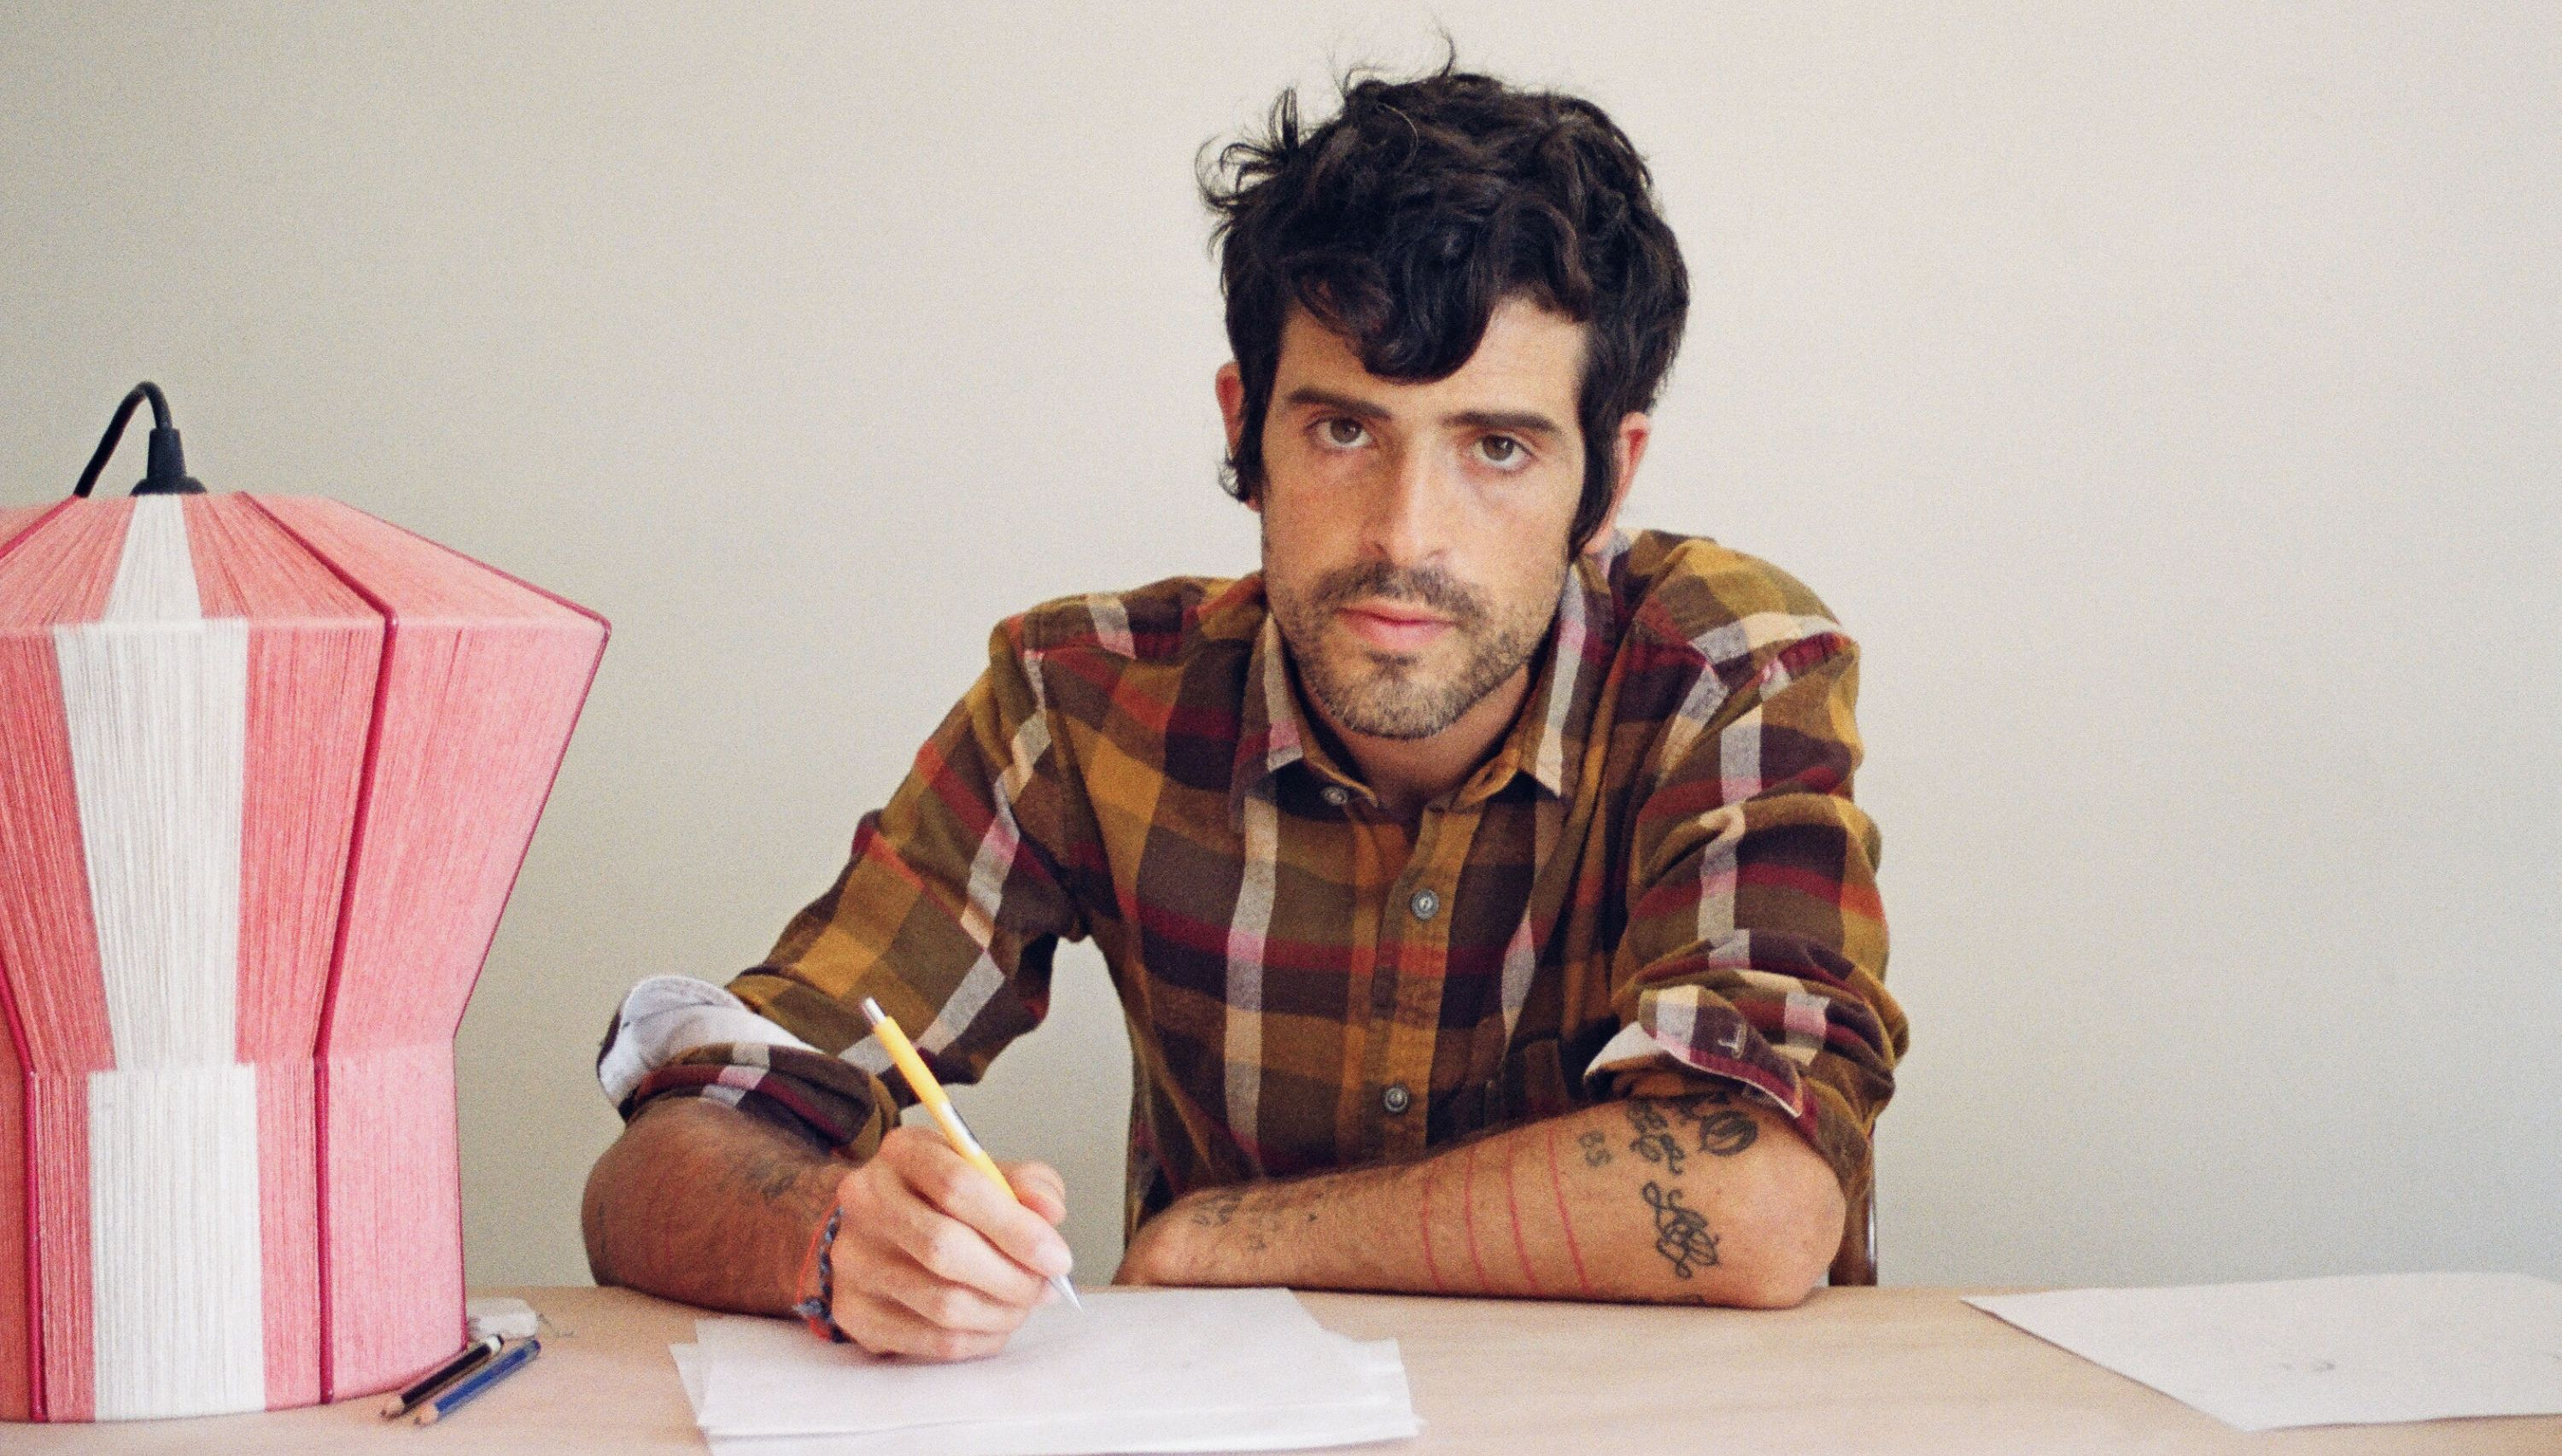 Devendra_Banhart_Photo1_by_Ana_Kras